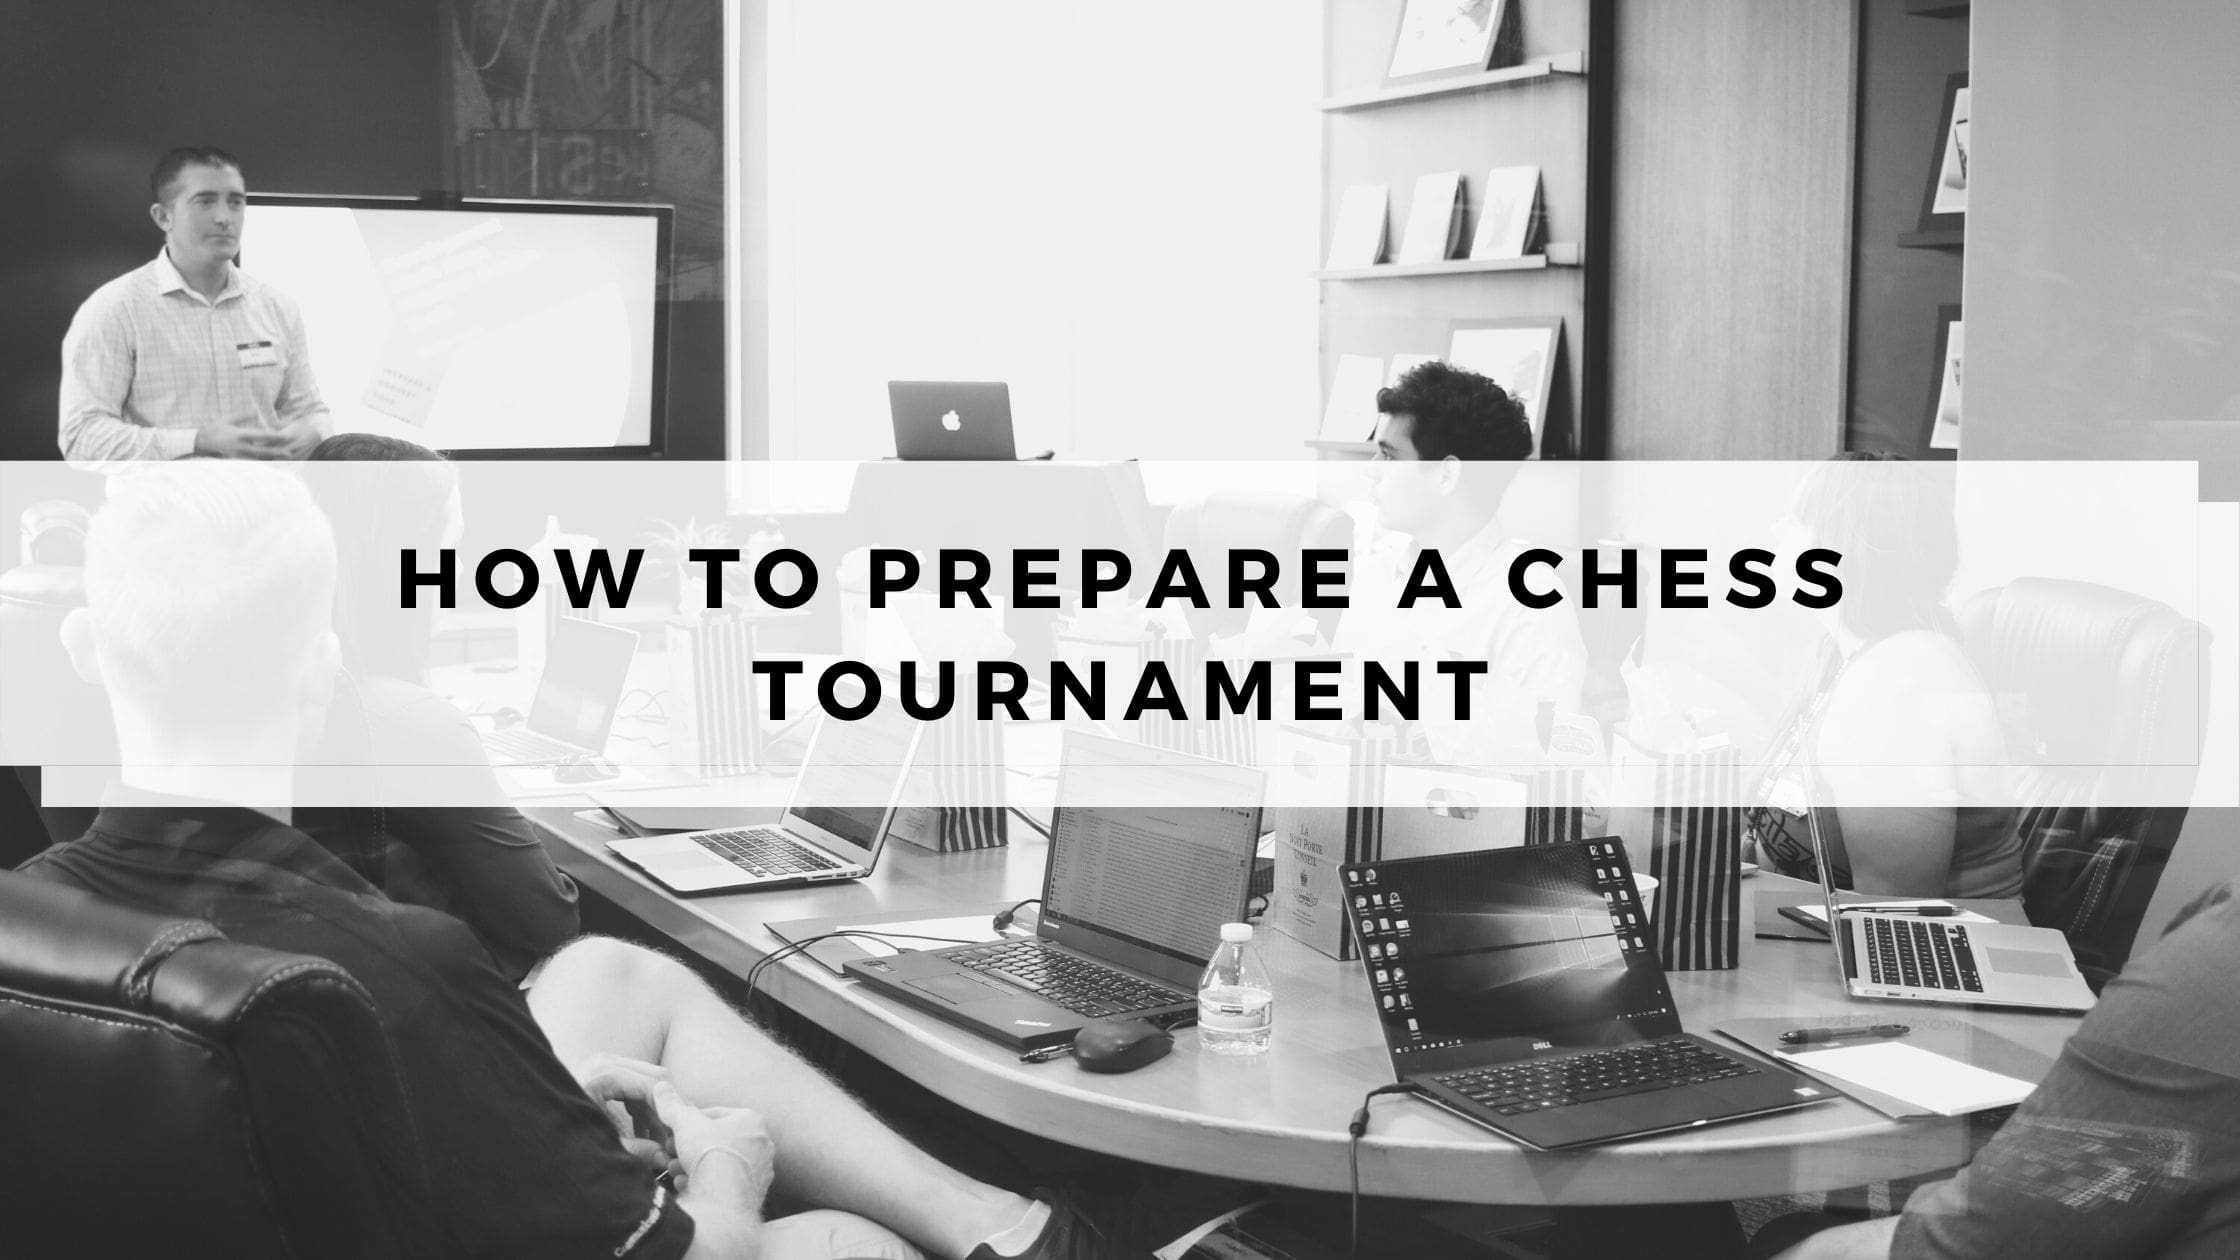 How To Prepare a Chess Tournament